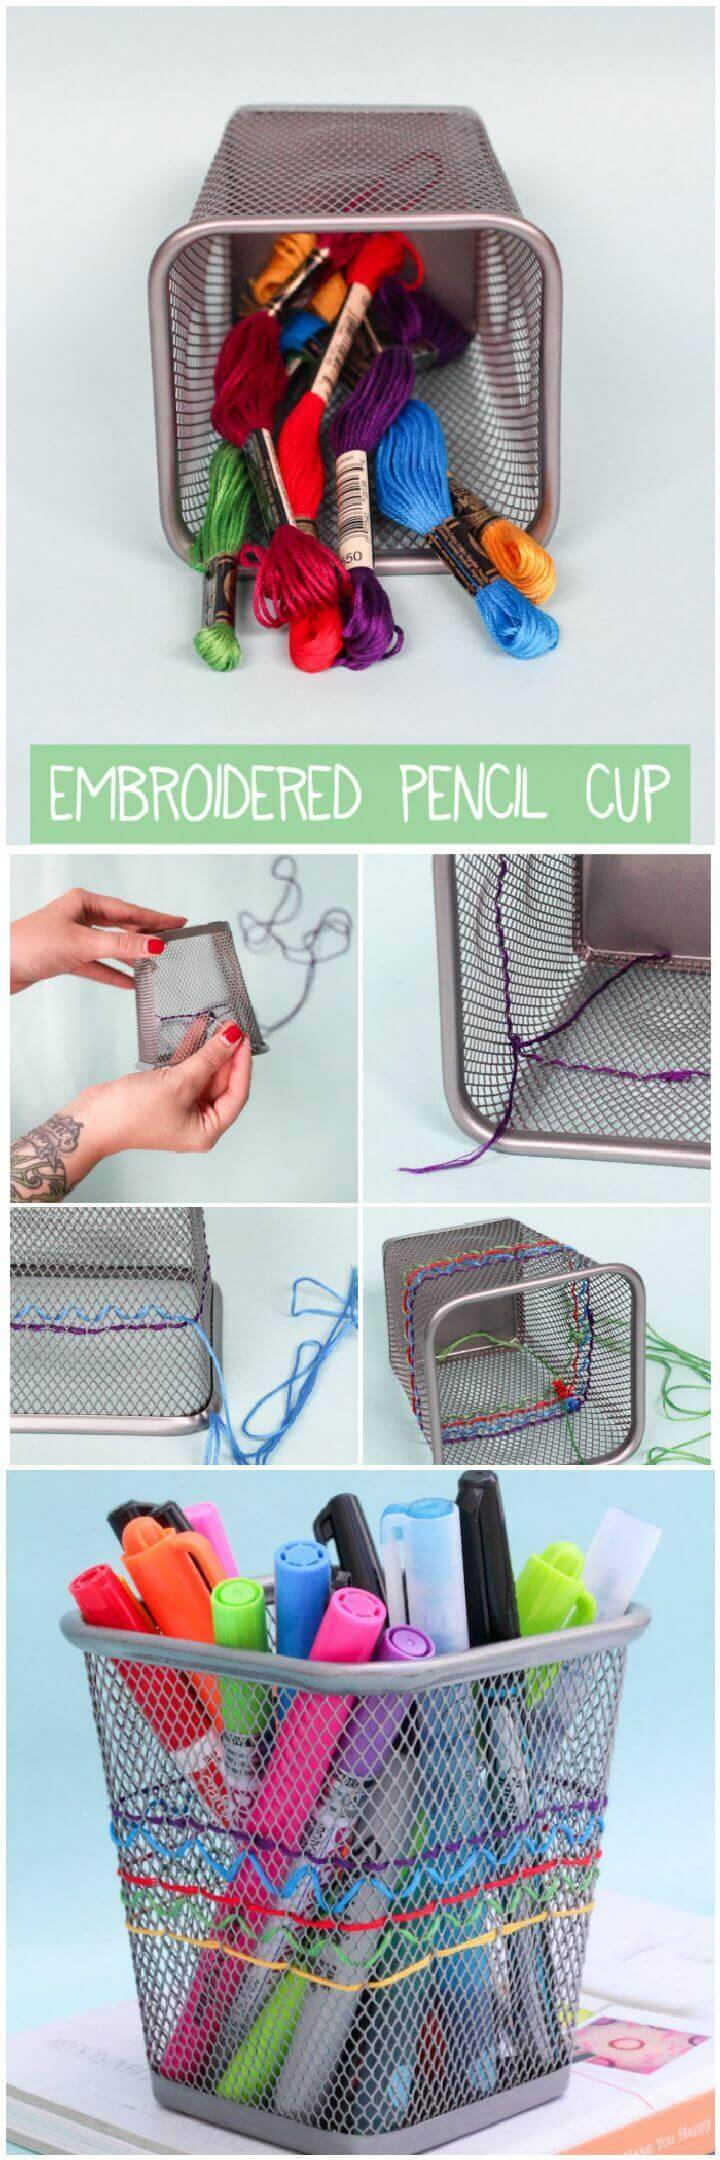 DIY Embroidered Pencil Cup